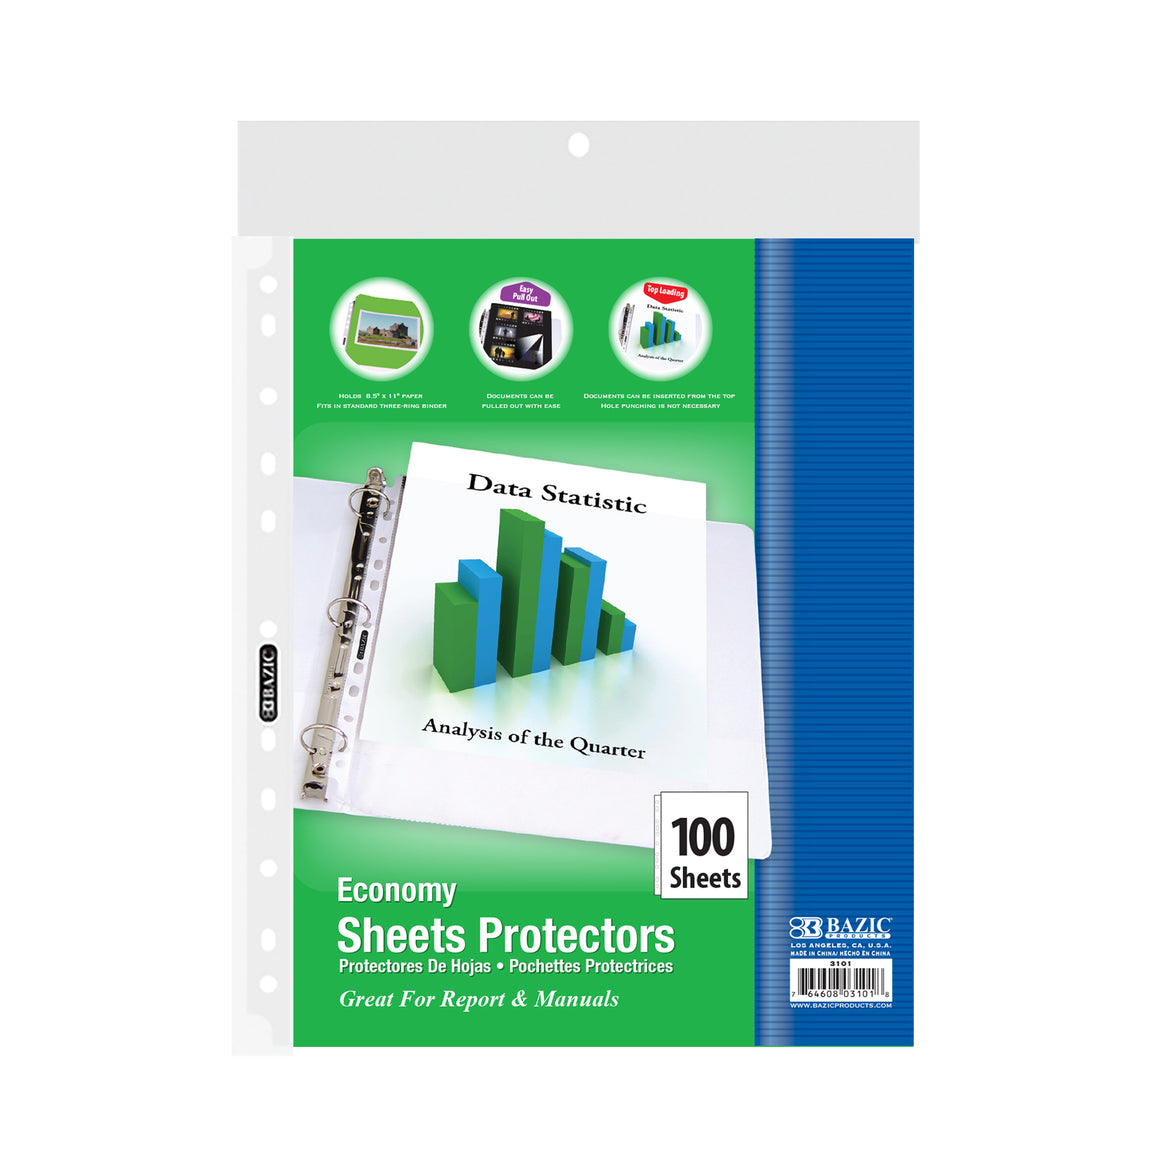 Economy Weight Top Loading Sheet Protectors (100/Pack) - Bazicstore